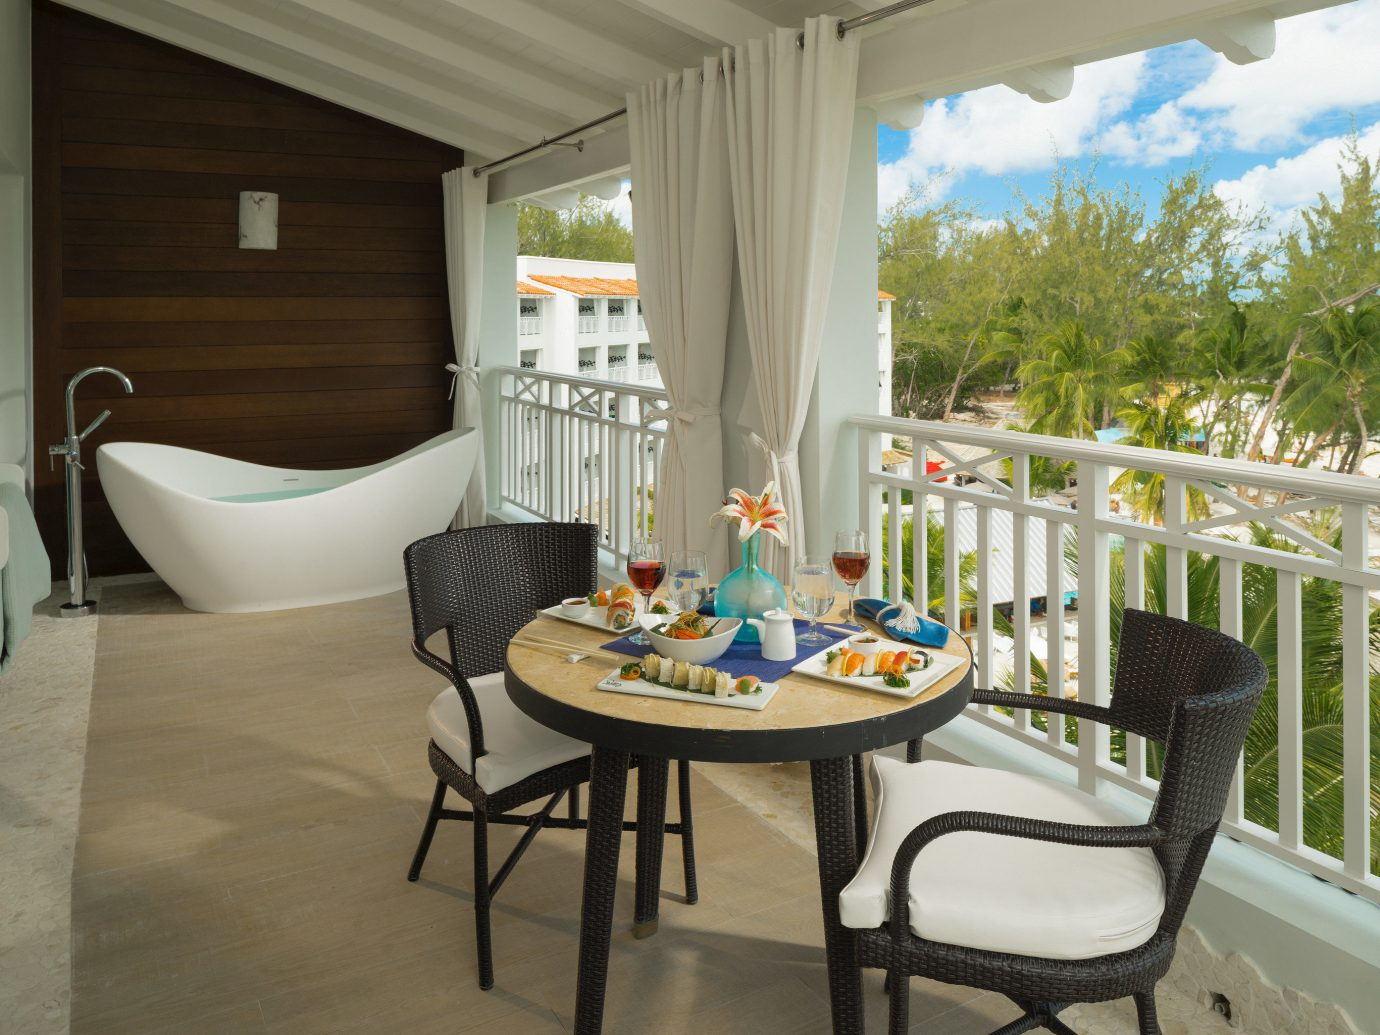 All-Inclusive Resorts Hotels floor chair indoor property window table interior design home real estate Balcony house porch estate outdoor structure furniture apartment Patio dining room living room